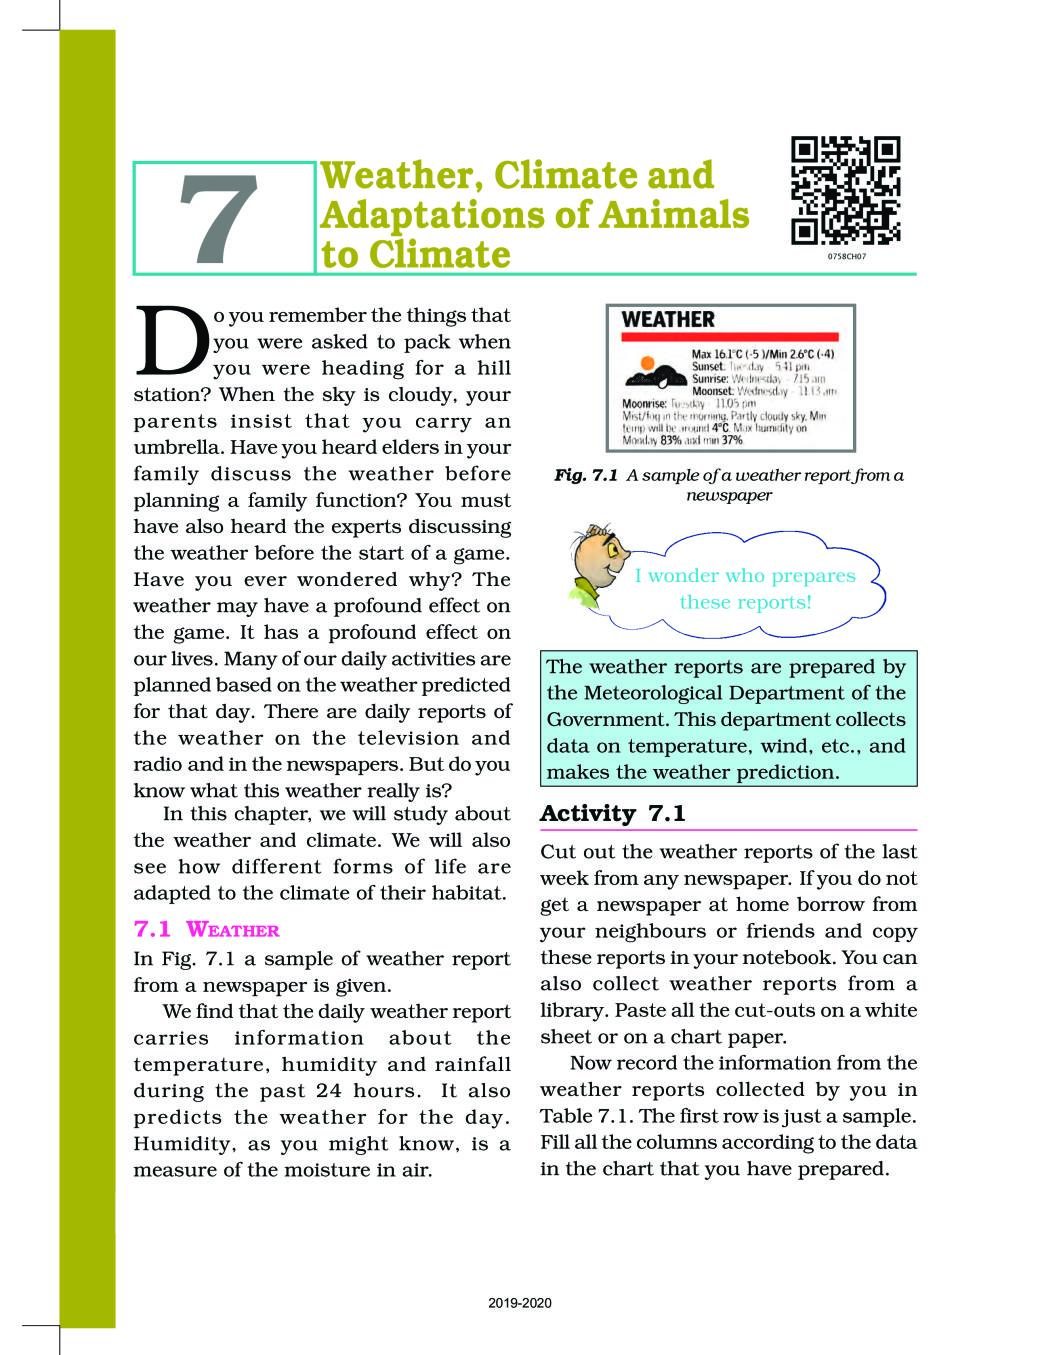 Ncert Book Class 7 Science Chapter 7 Weather Climate And